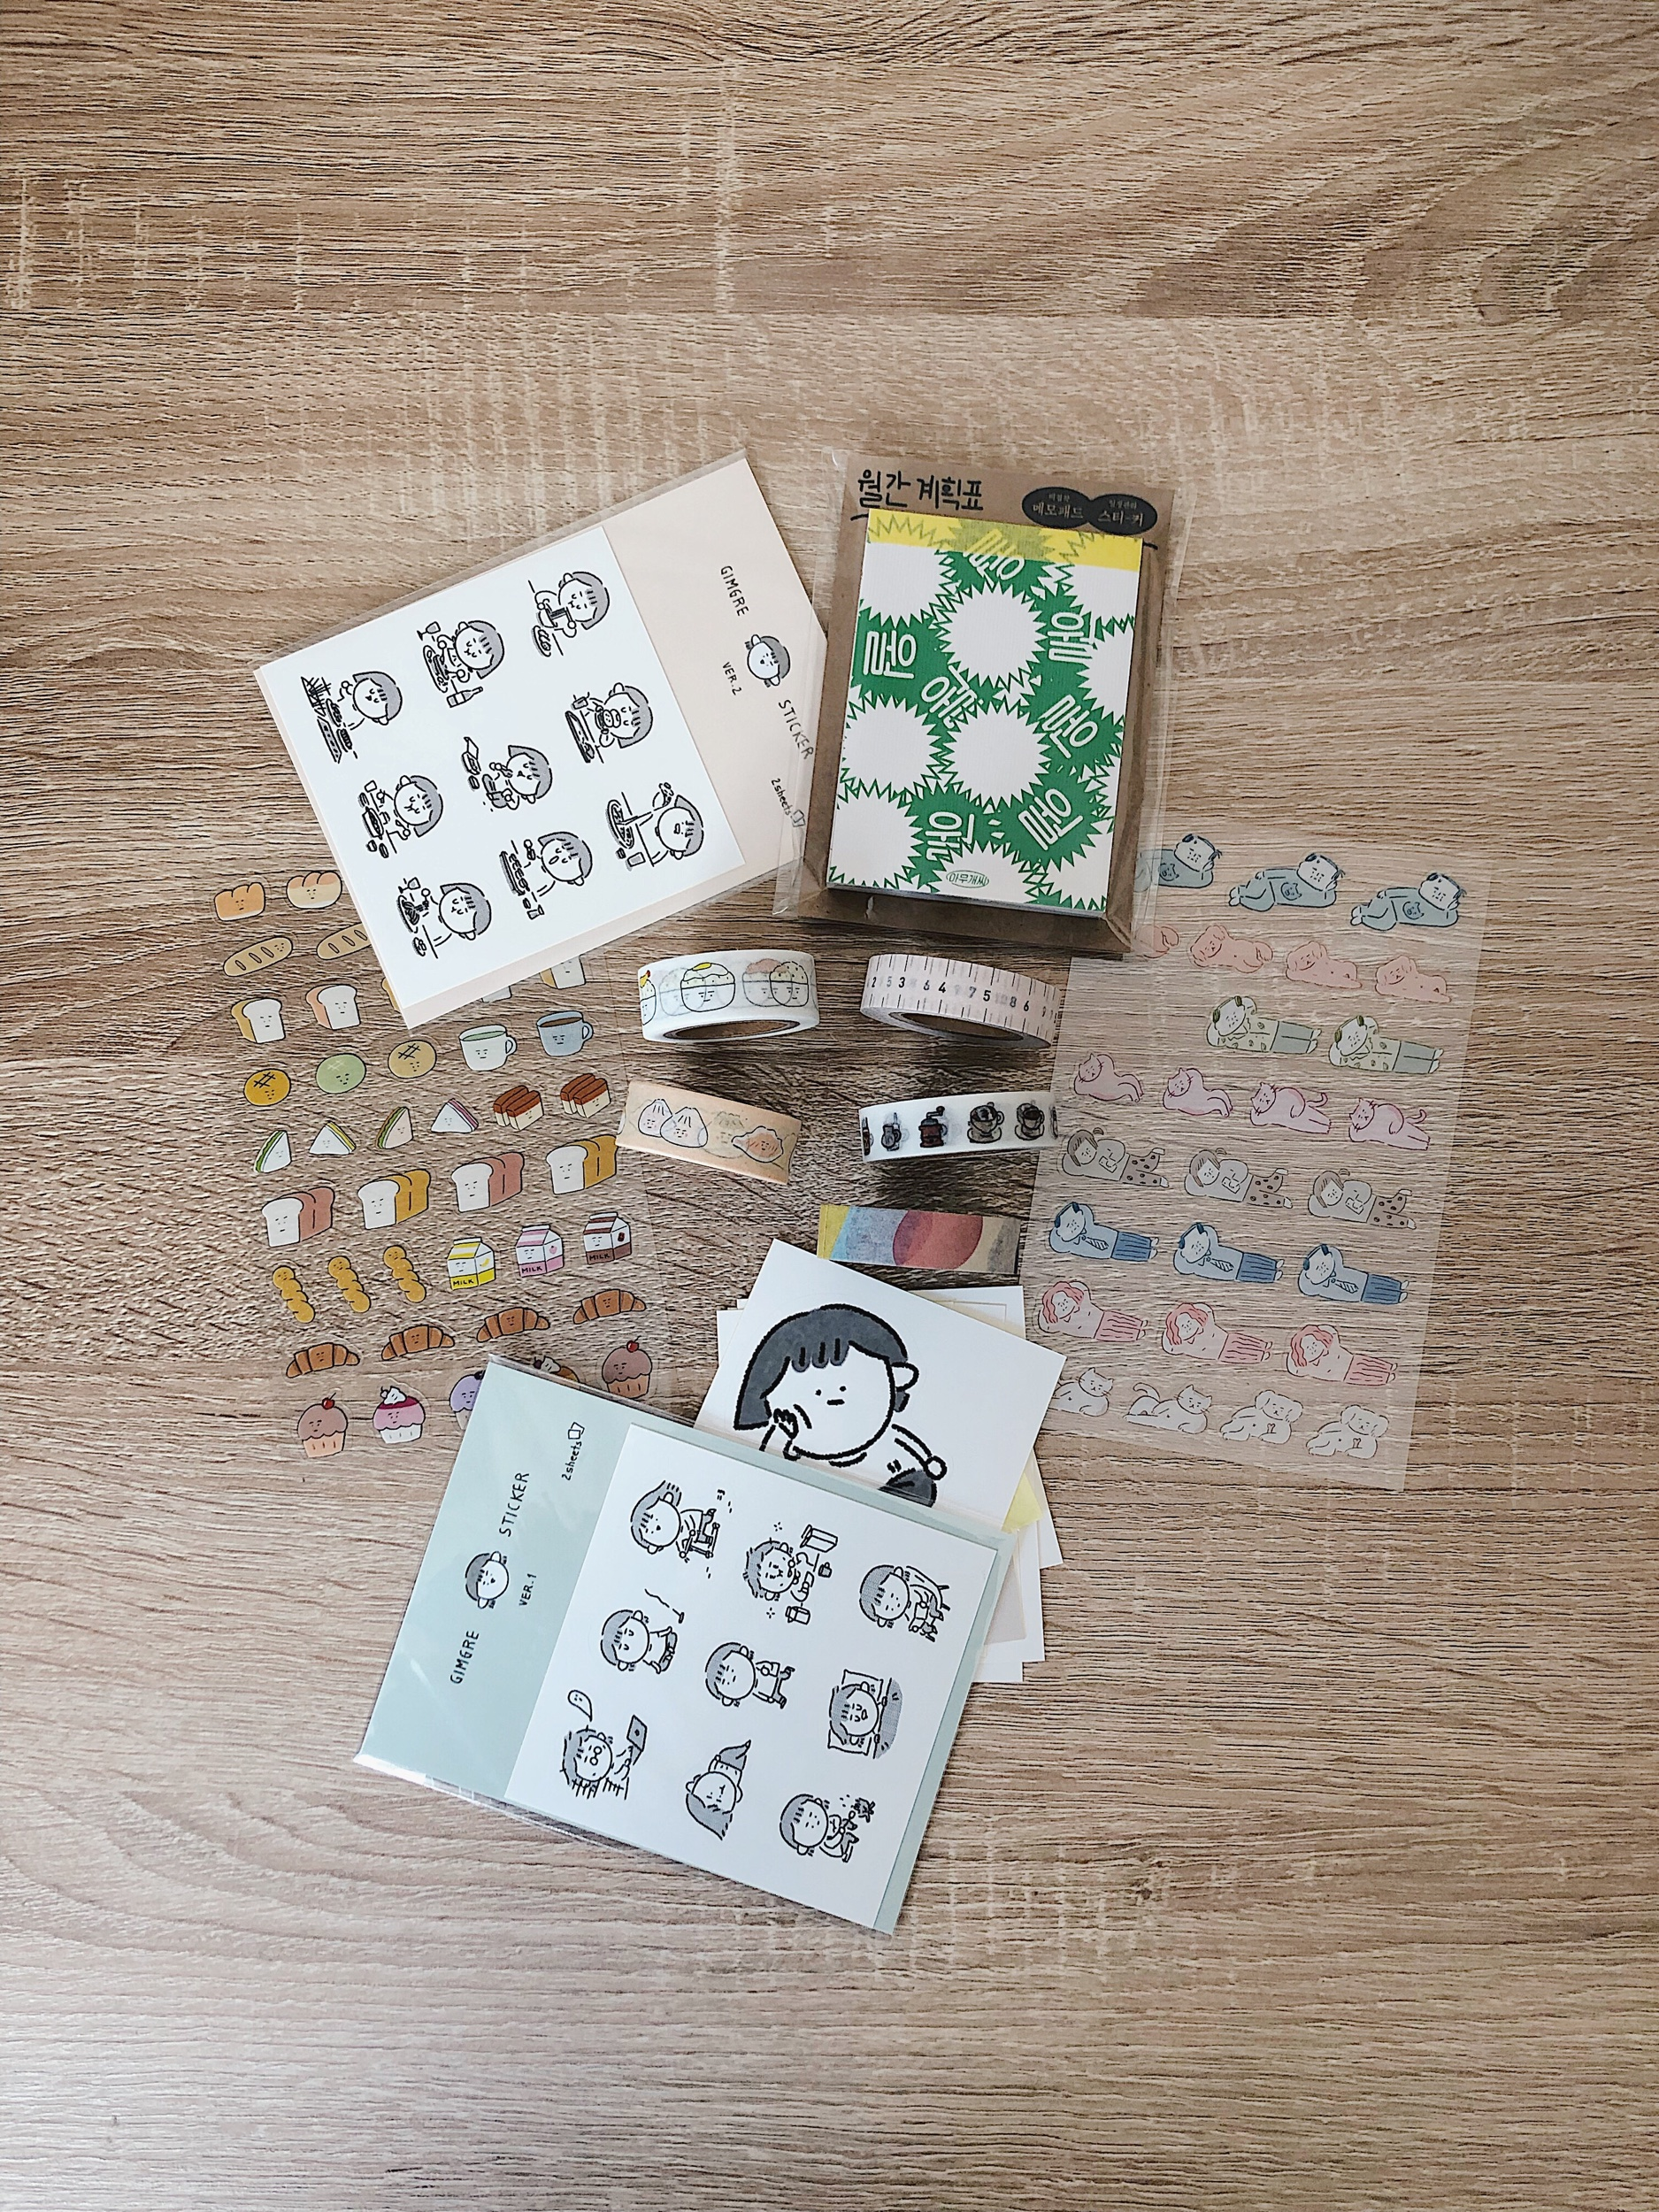 "Top center: green monthly memo pad by Ahmugae-c  Sticker sheets: hand-drawn stickers by Gimgre, bread stickers by Bakban Design, ""family lying down"" stickers by Ajassi  Masking tapes: rice and dumpling by Bakban Design, coffee by 3months, pink ruler and patterns by oh, lolly day!"